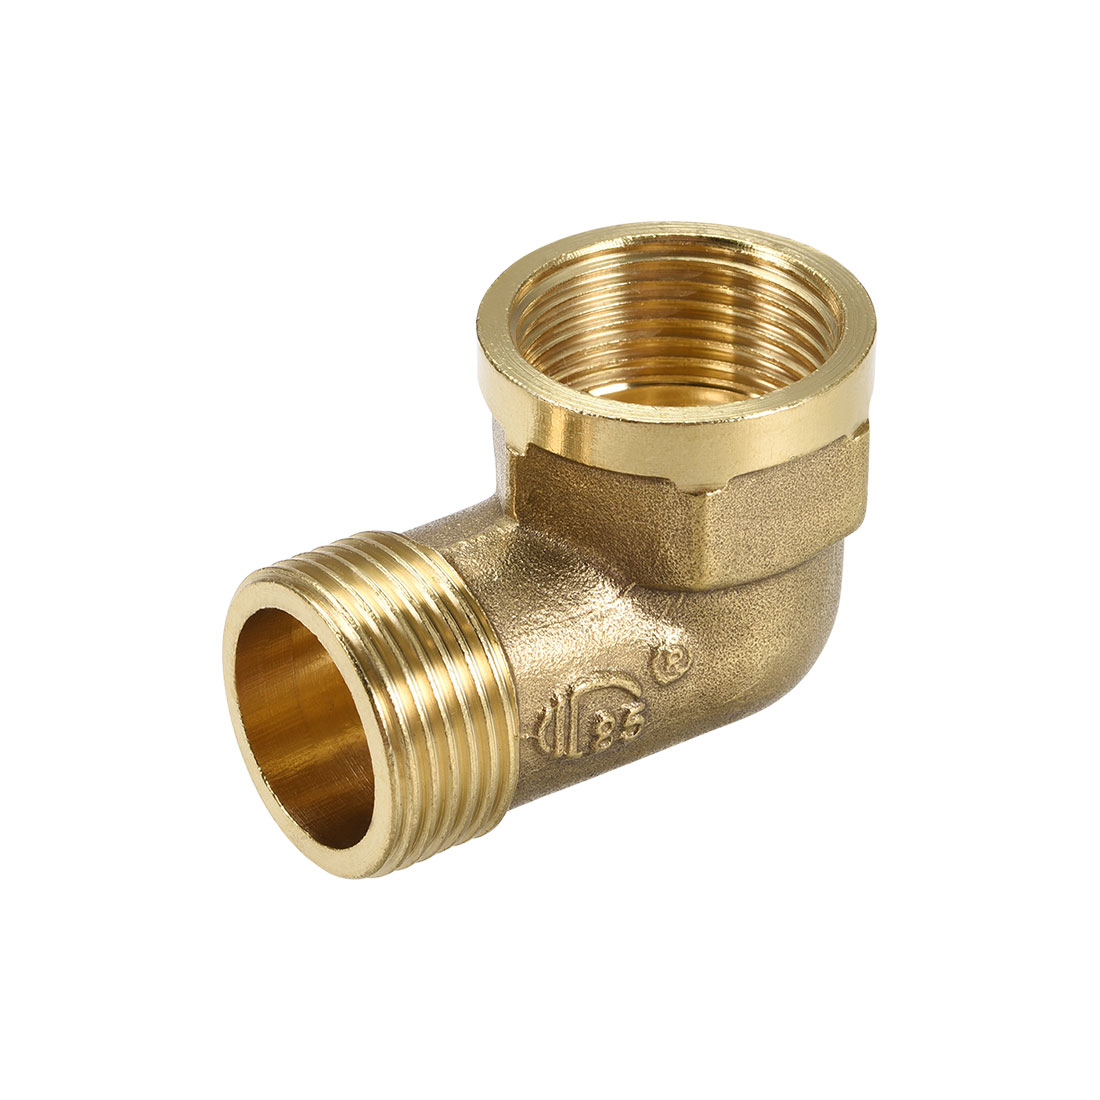 Brass Pipe Fitting 90 Degree Street Elbow G3/4 Male x G3/4 Female